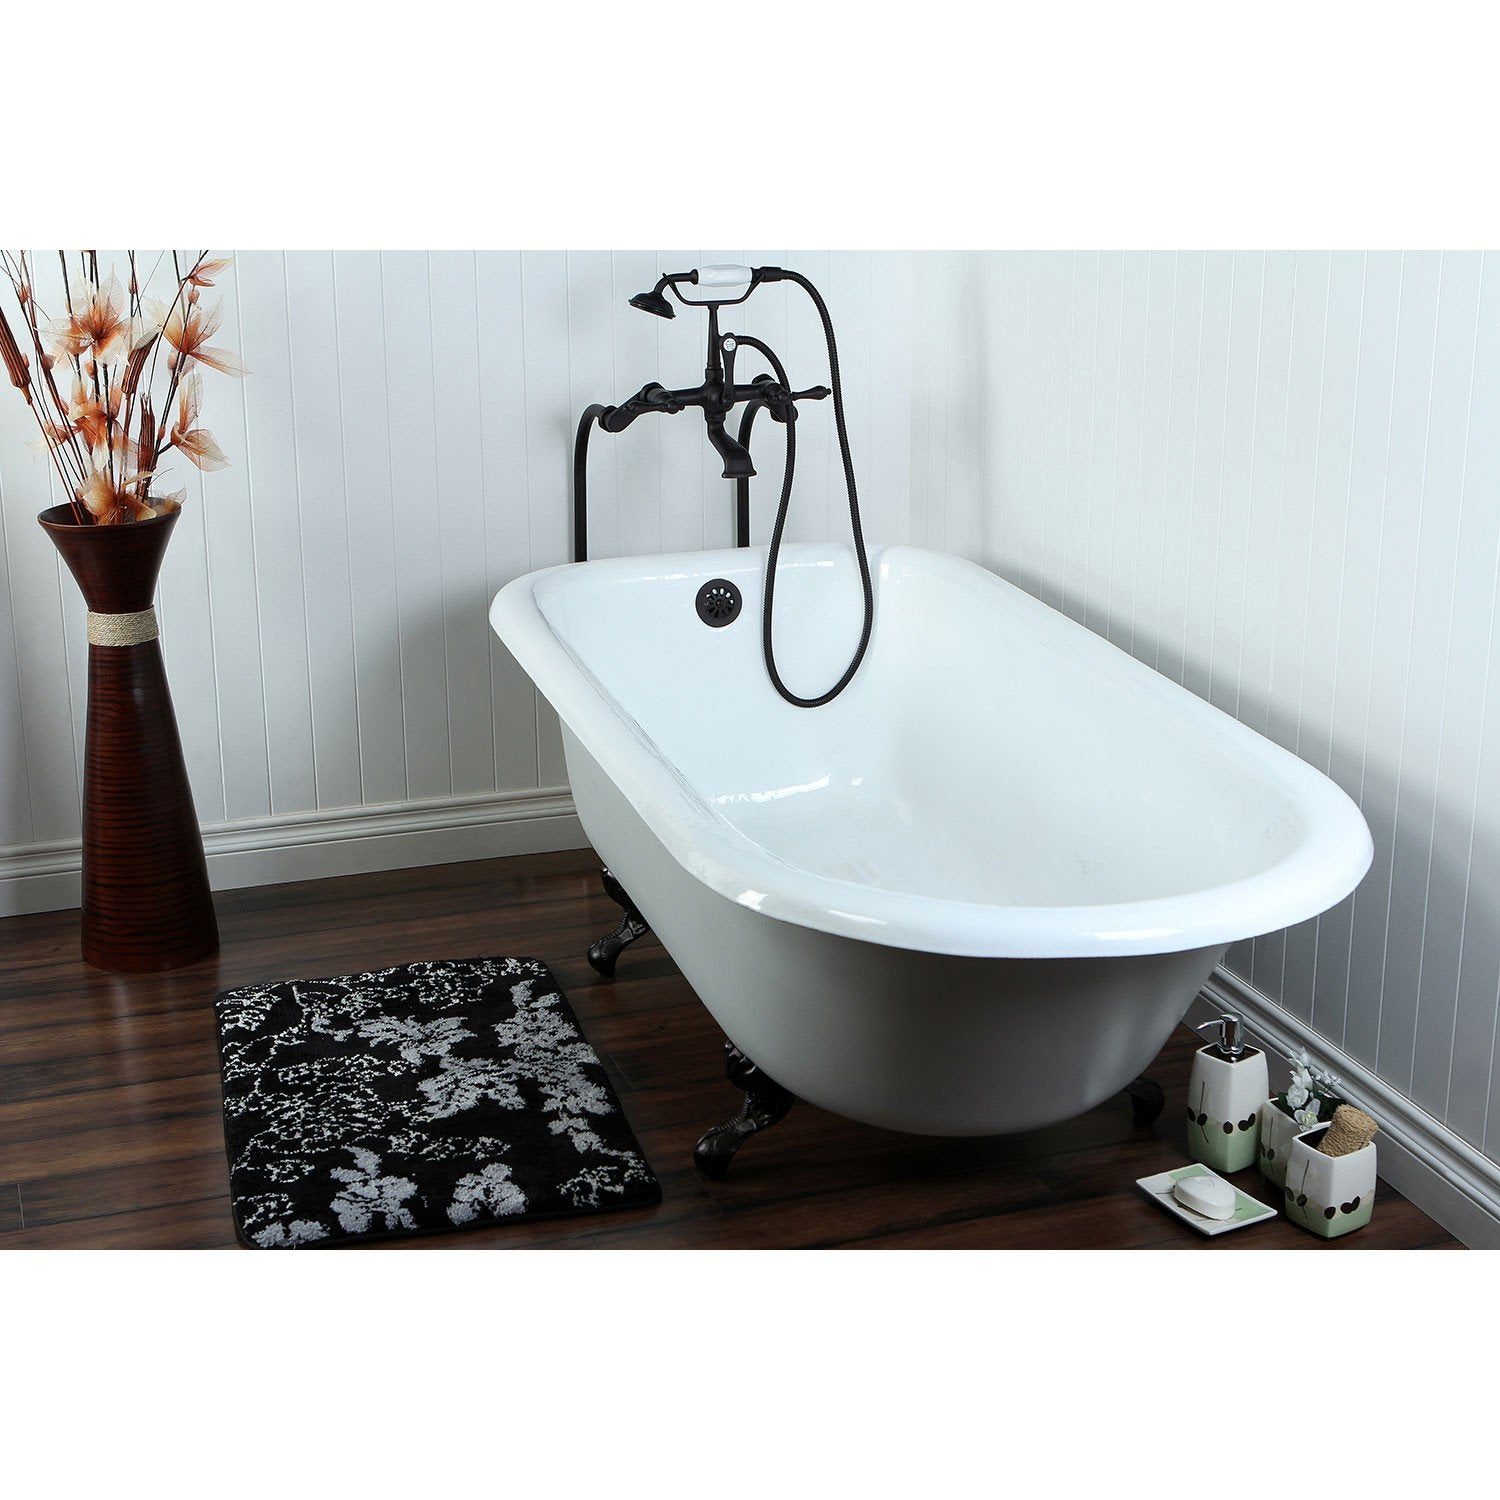 "67"" Clawfoot Tub w Floor Mount Oil Rubbed Bronze Tub Filler Faucet Package CTP40"